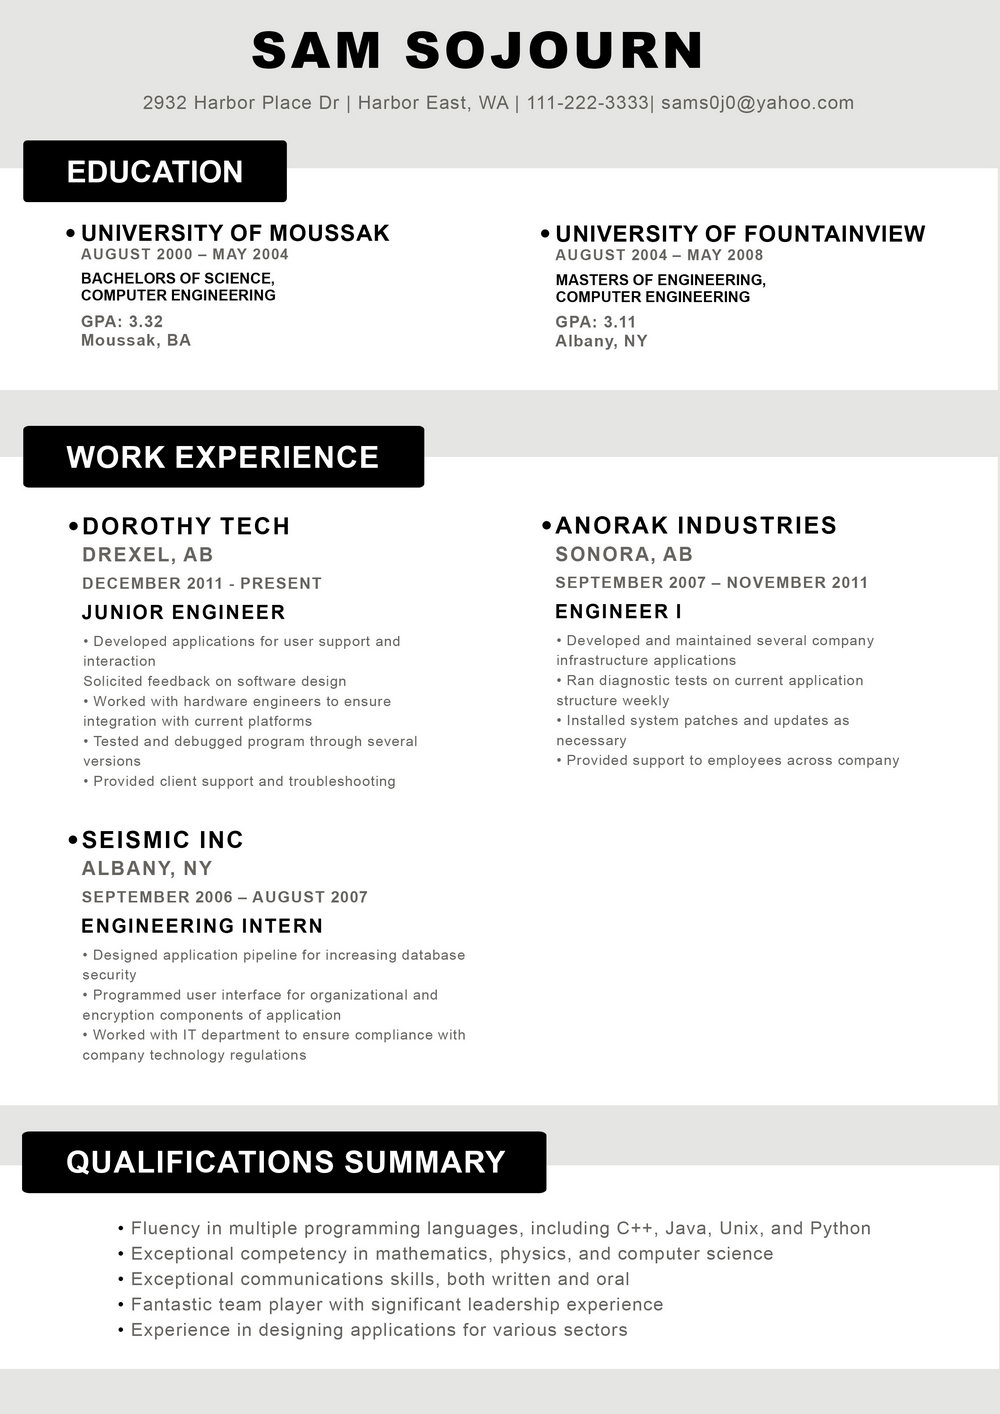 Resume Samples For Creative Professionals